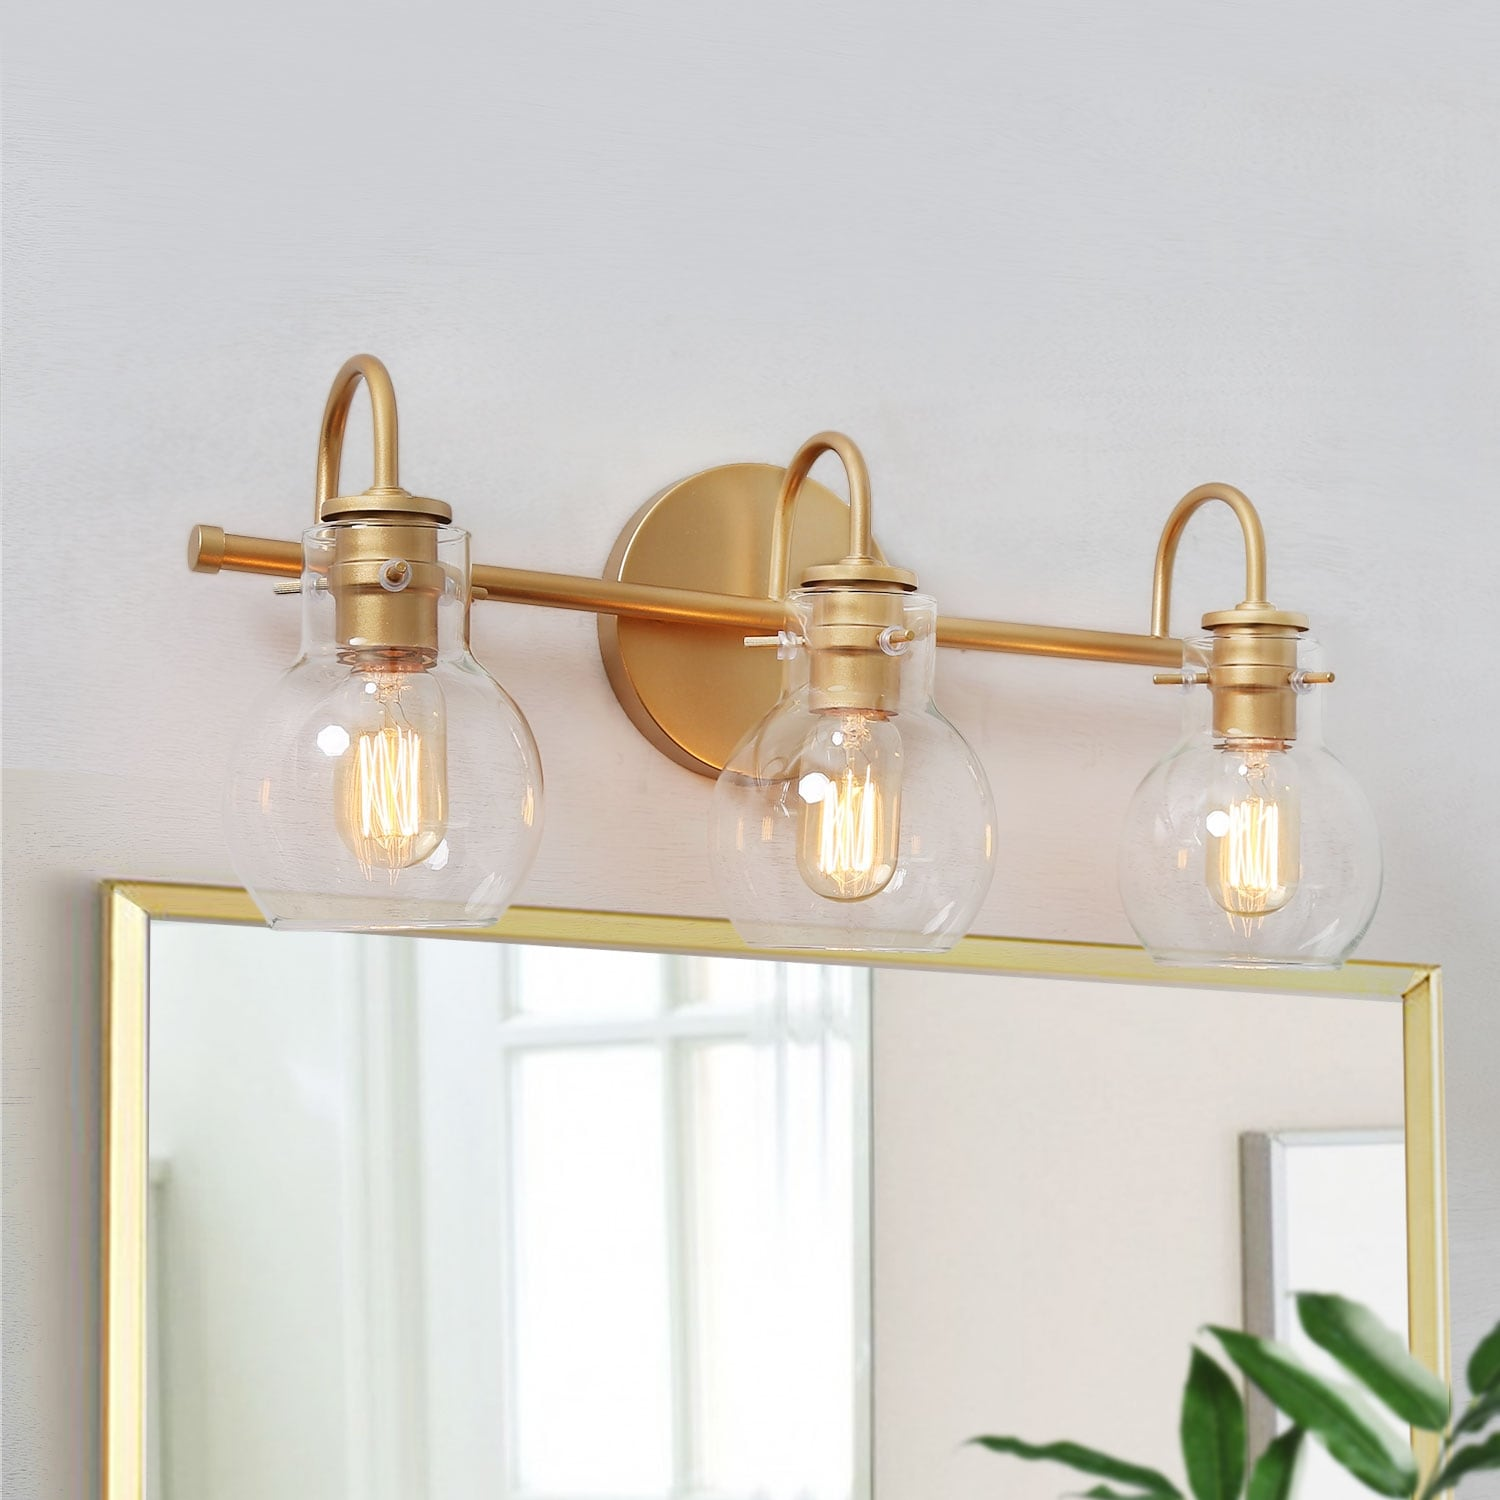 Carson Carrington Gold Bathroom Vanity Lighting Wall Sconces For Powder Room L22 X W7 X H9 L22 X W7 X H9 Overstock 29346693